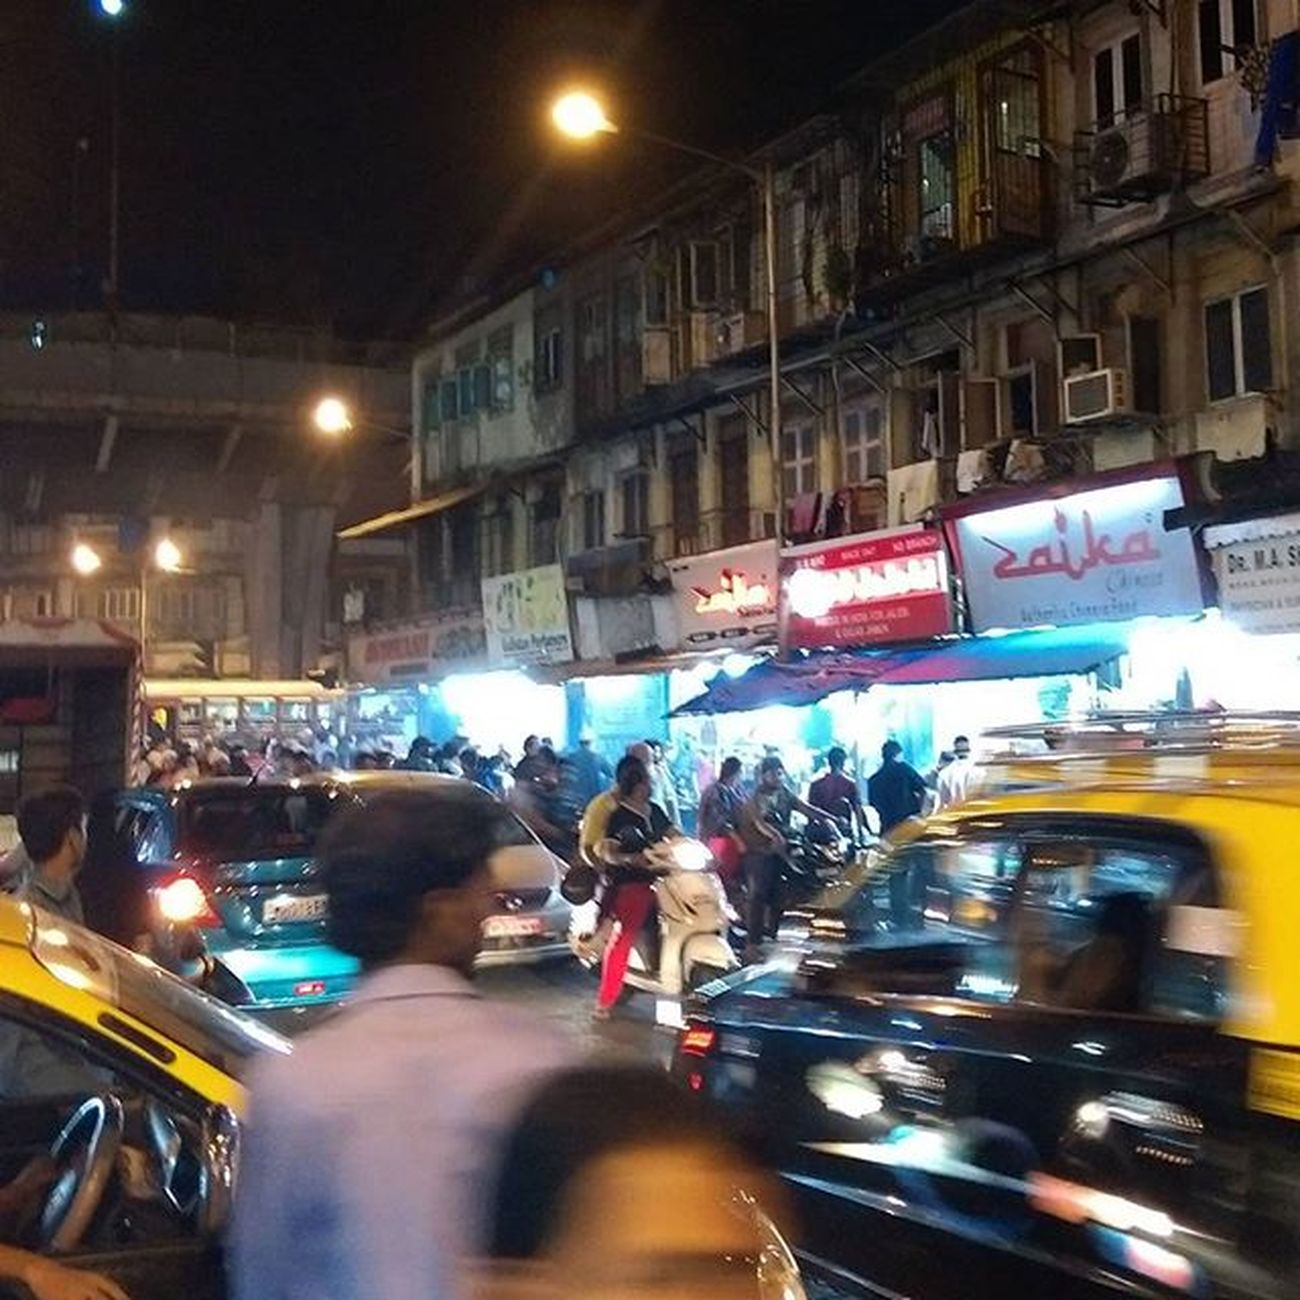 Perks of ramzan. Late night amazing food on streets. Jj  Nagpada Mohammedaliroad Ramzan Food Zaika Instagram Mumbai Igers Indian